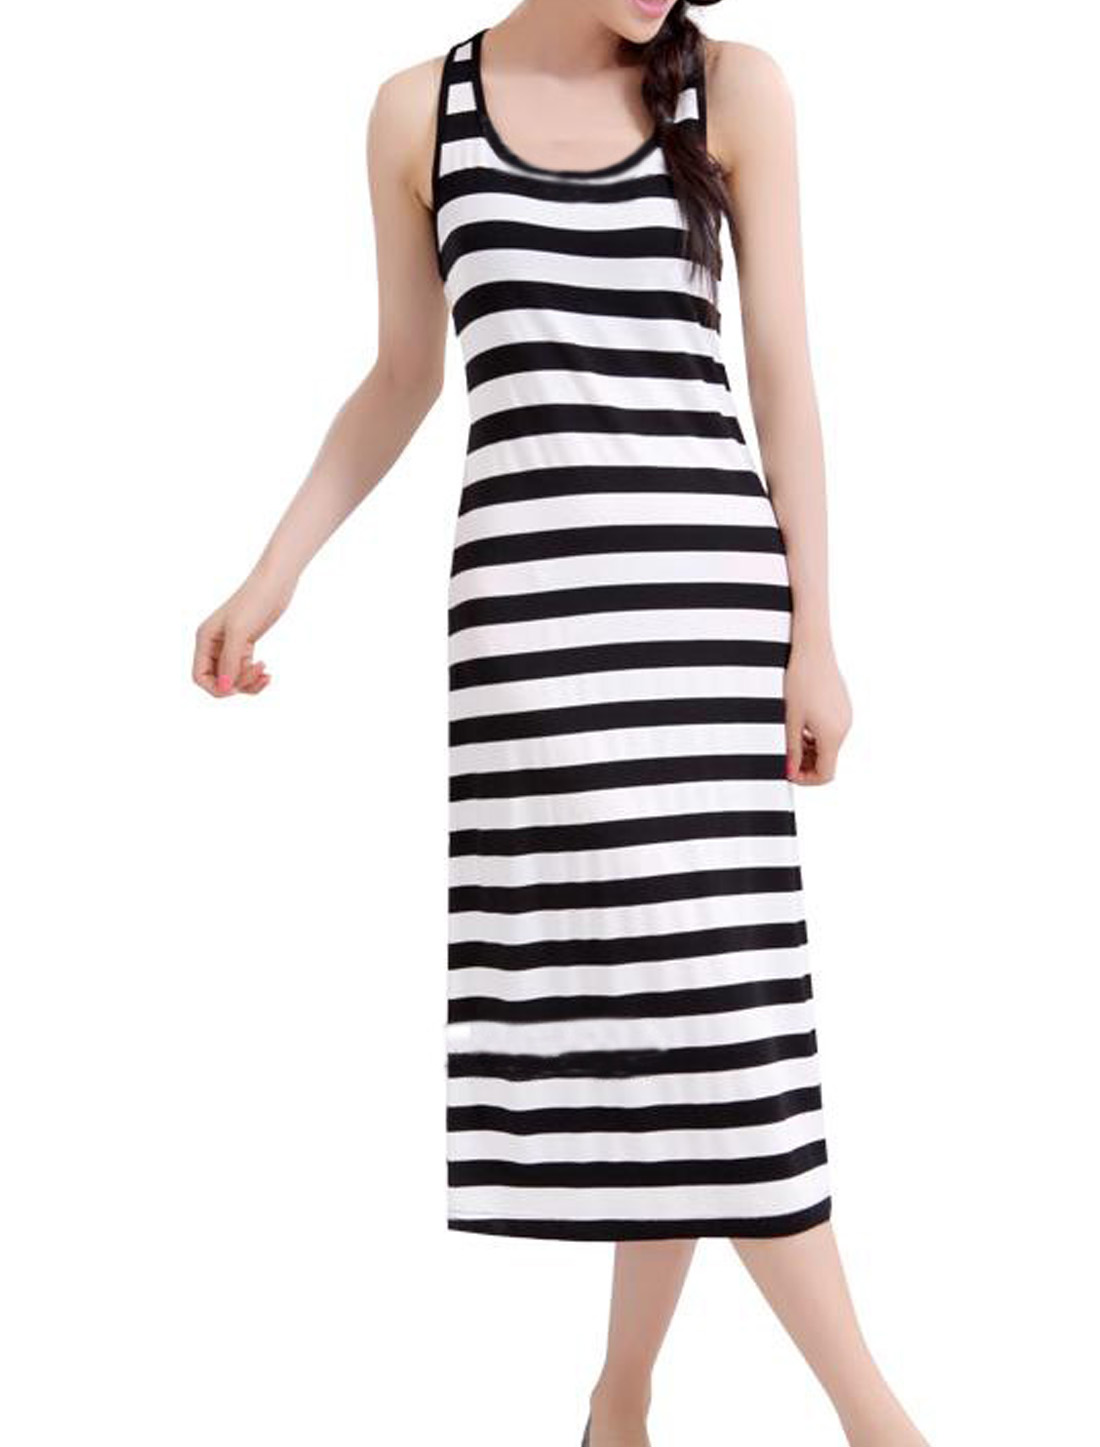 Lady Black White Sleeveless Bar Striped Racer Back Maxi Dress L